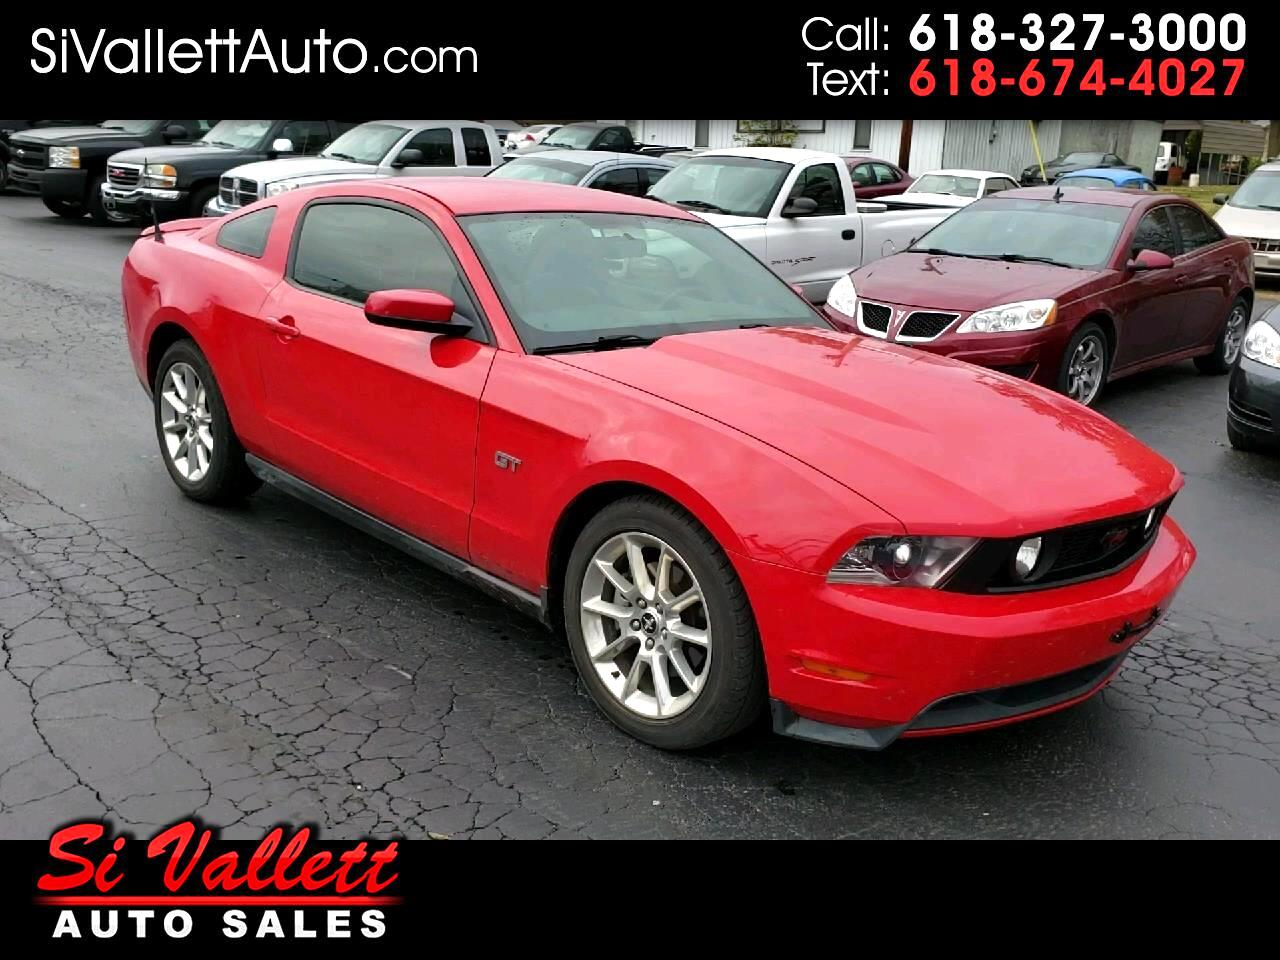 2010 Ford Mustang 2dr Cpe GT